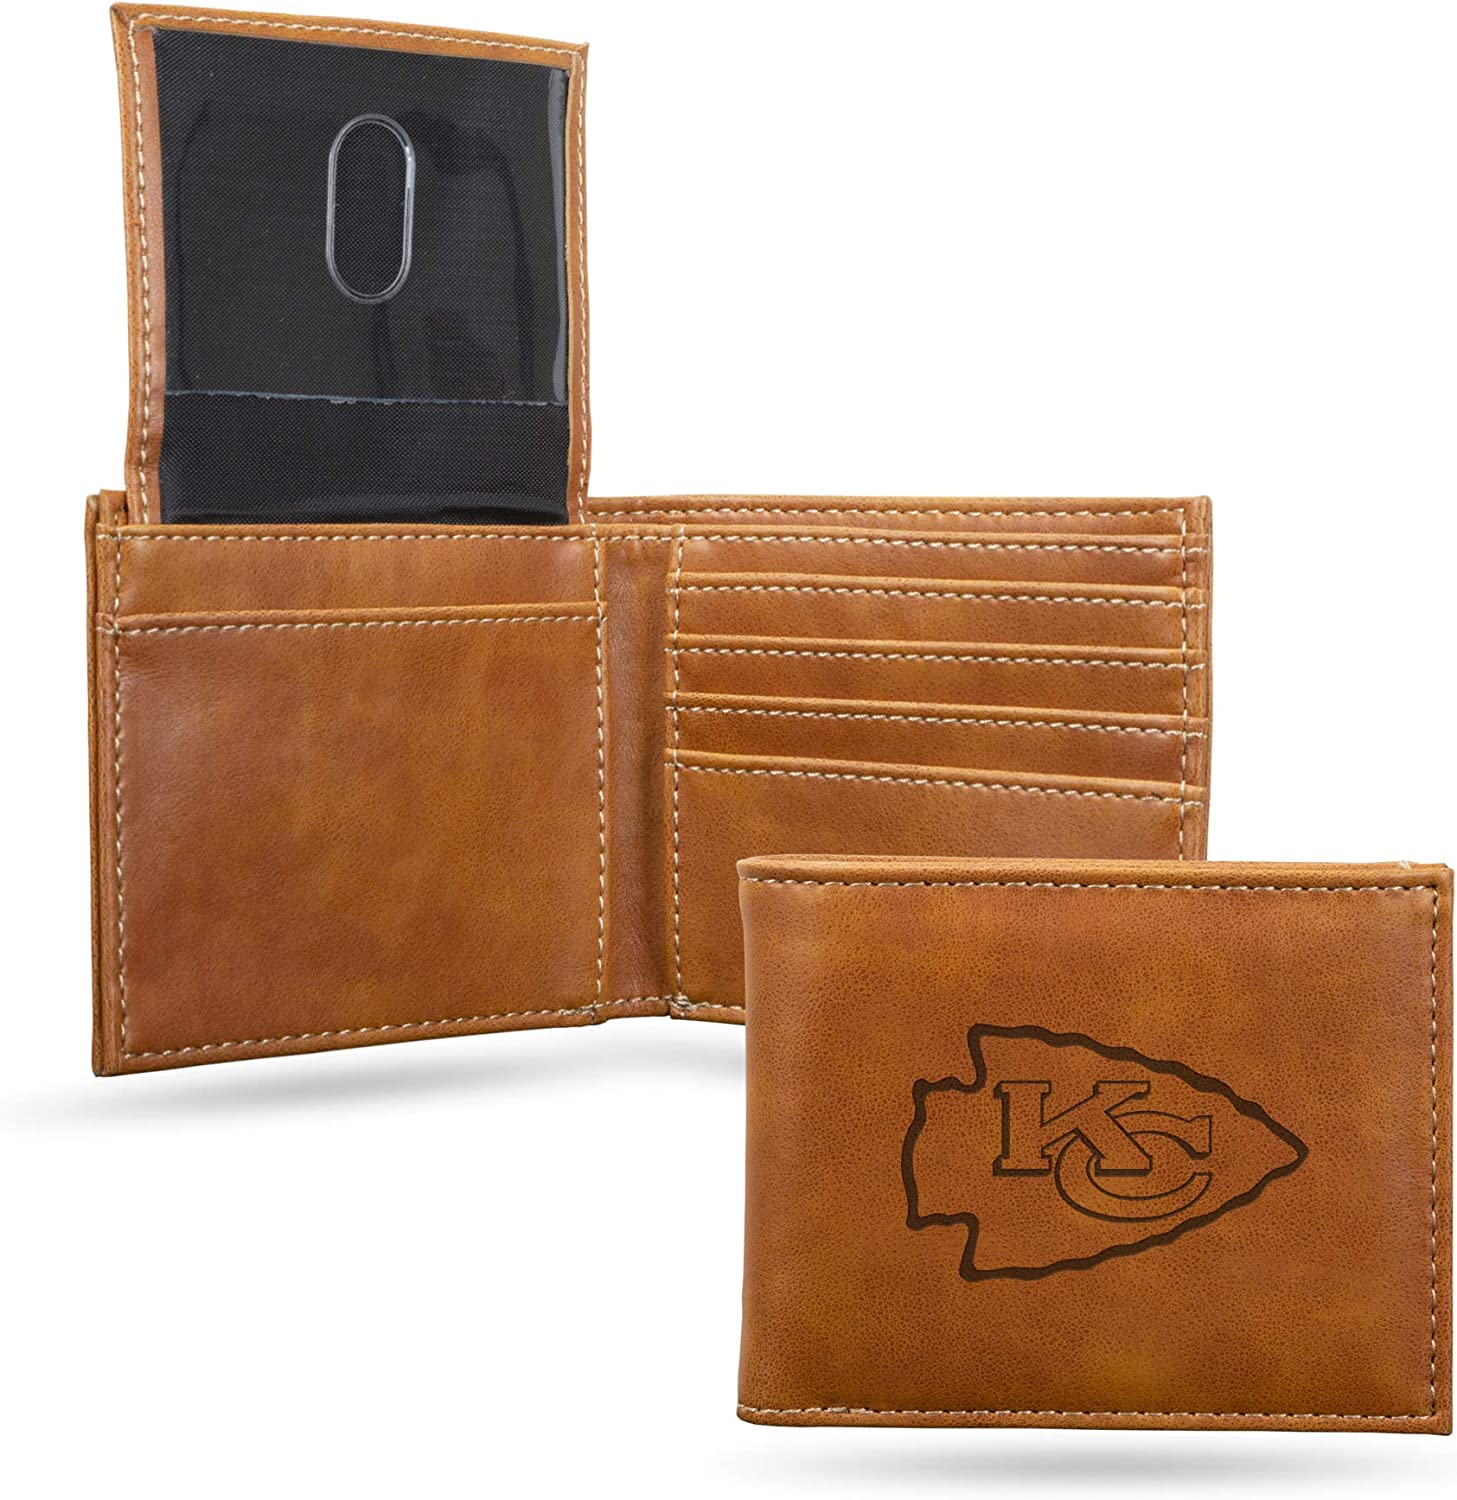 Rico Industries unisex NFL Kansas Chiefs Many popular brands Laser City Factory outlet Bil Engraved